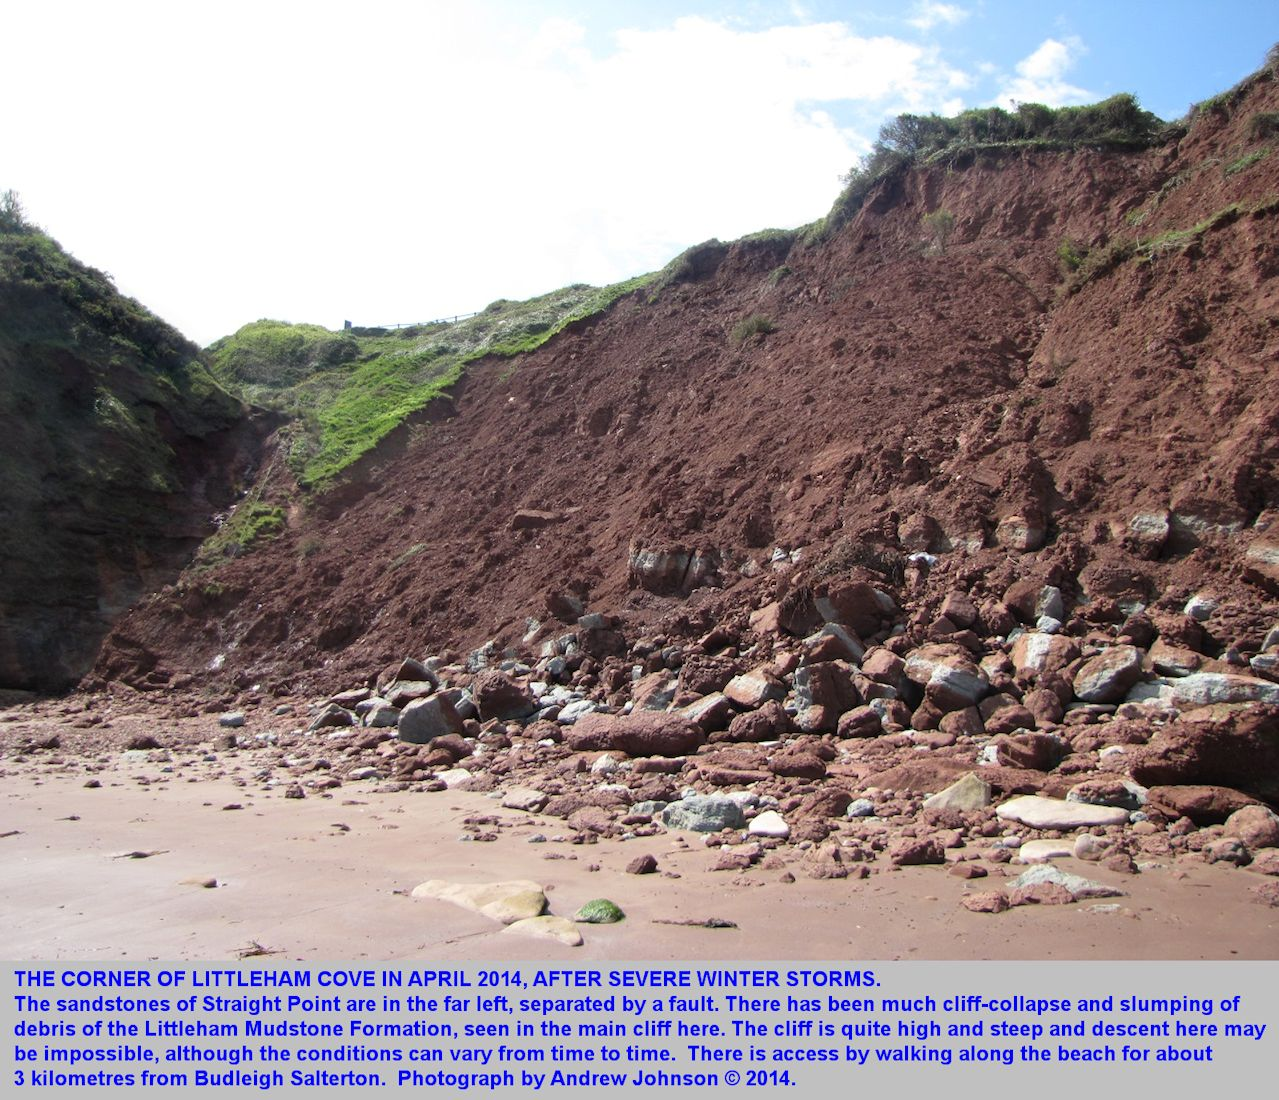 The corner of Littleham Cove at the fault adjacent to Straight Point, west of Budleigh Salterton, Devon, April 2014, photograph courtesy of Andrew Johnson